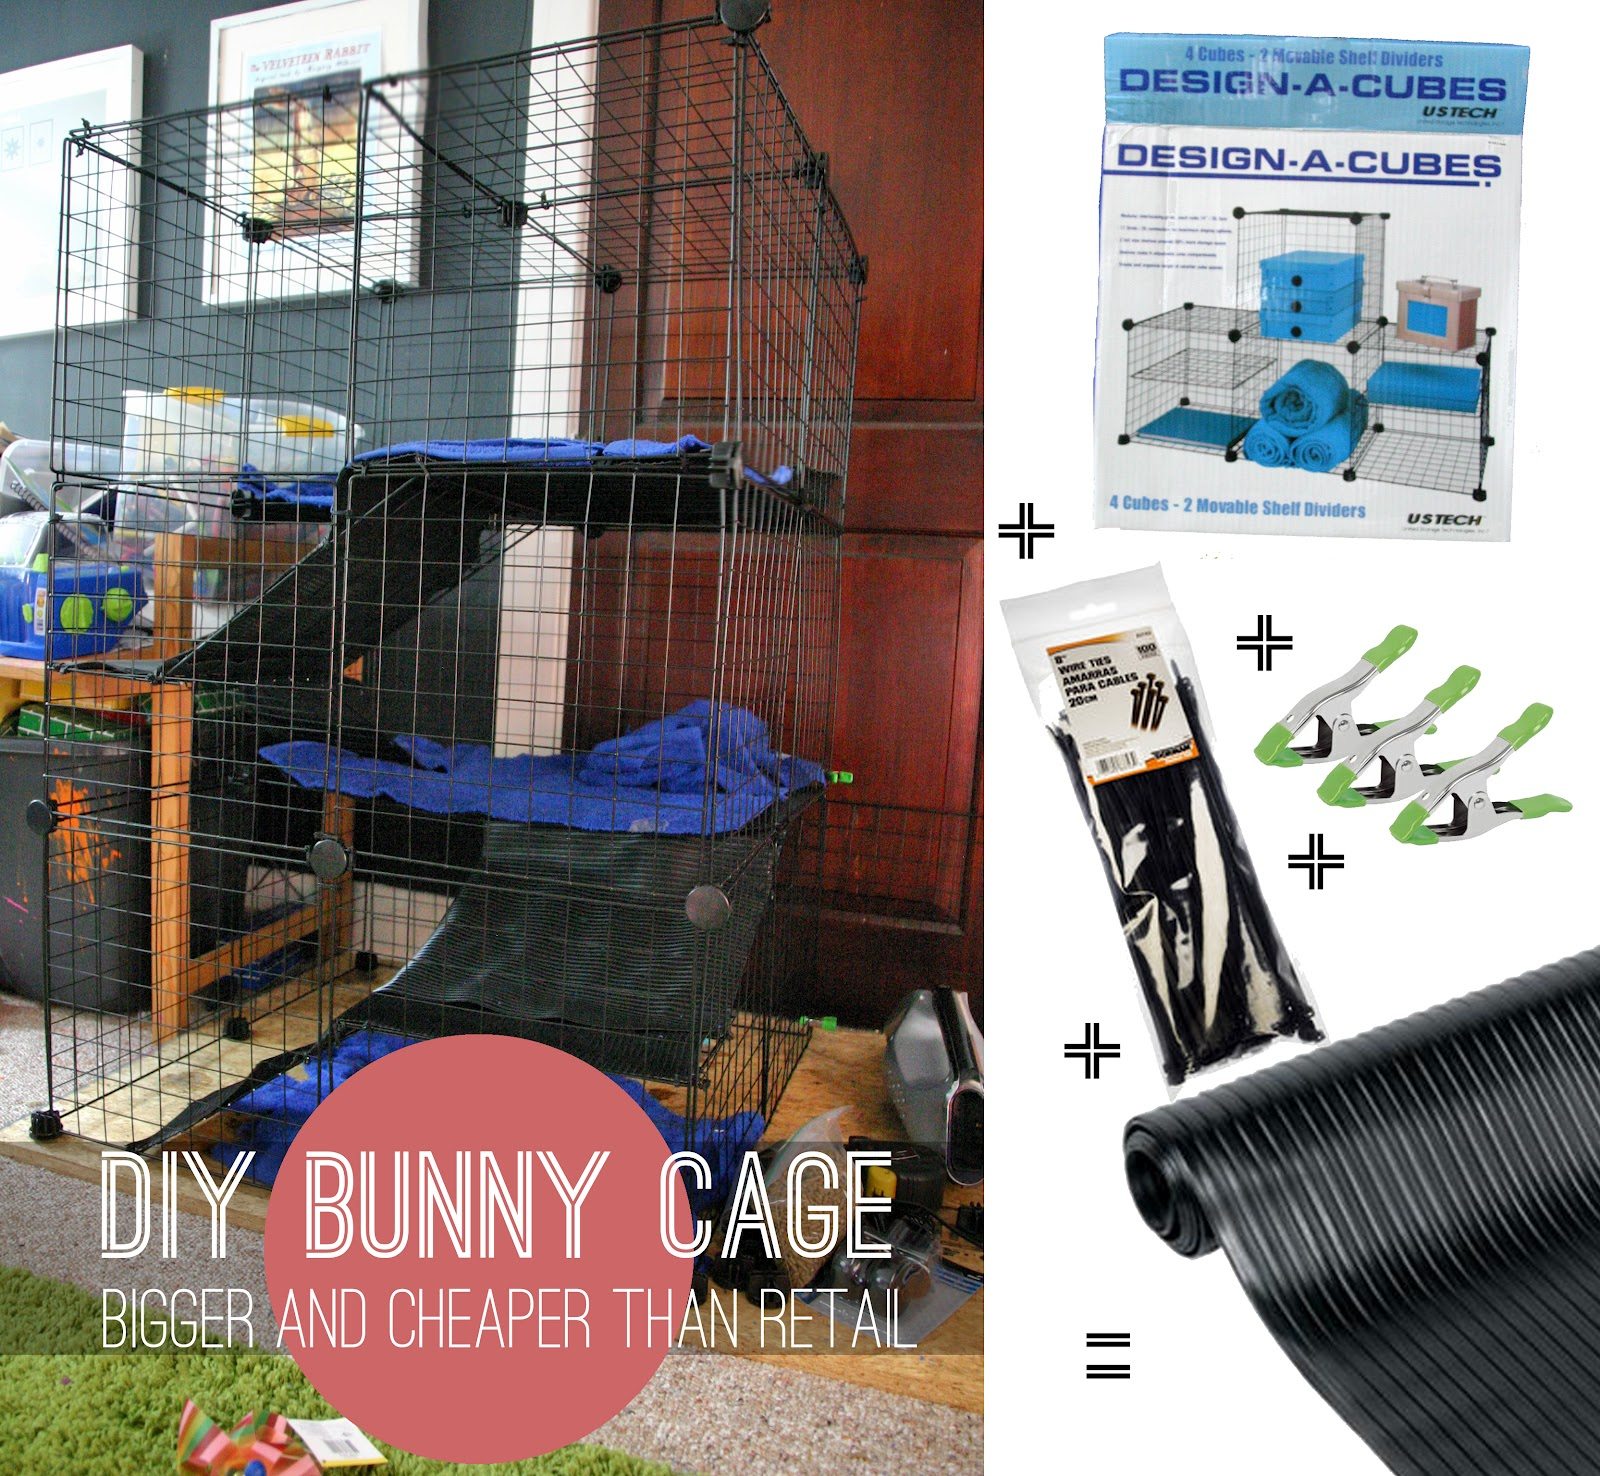 Grosgrain diy bunny small animal cage bigger and for Easy diy rabbit cage budget